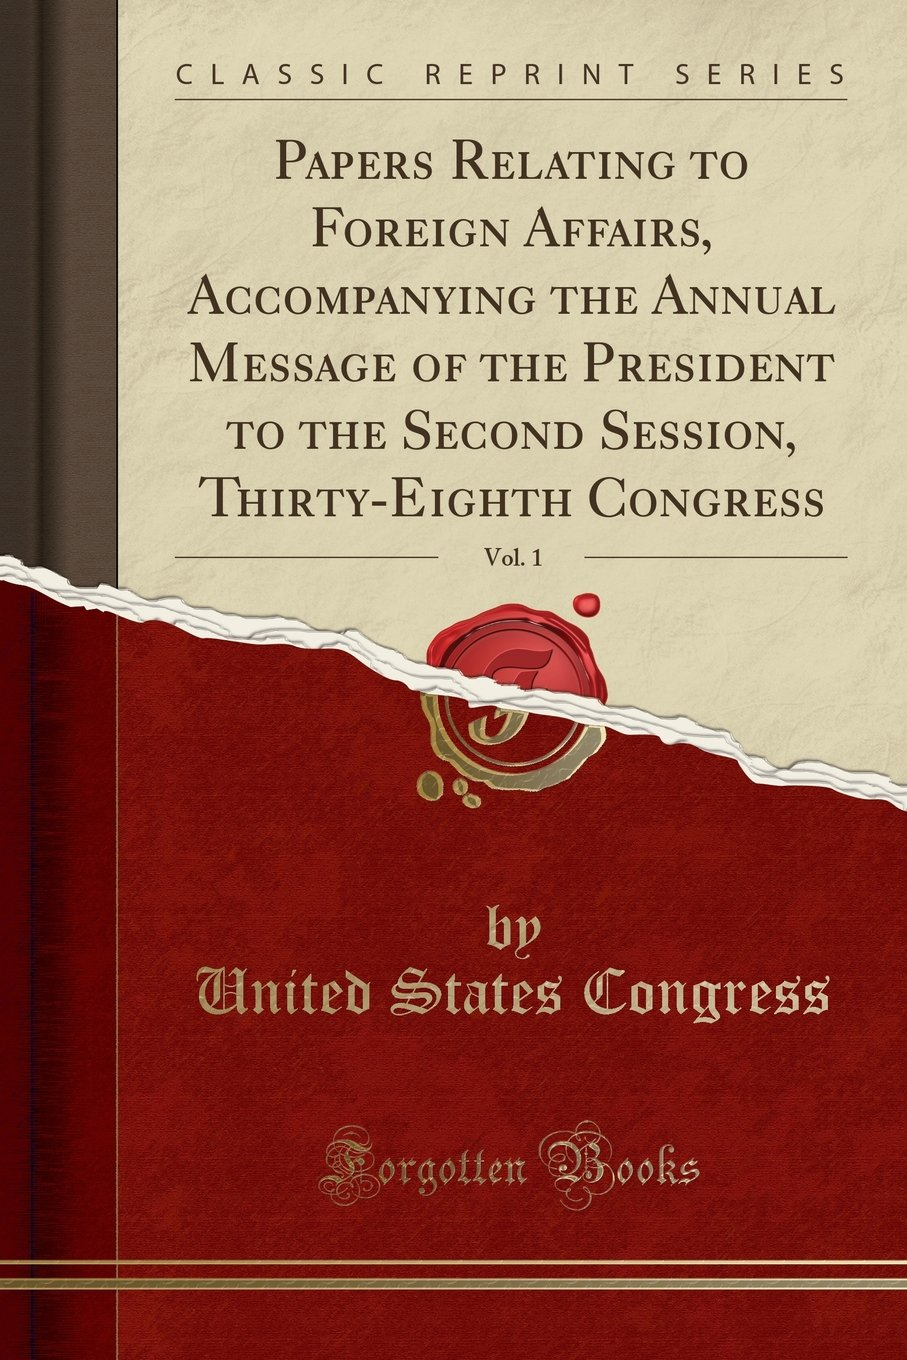 Download Papers Relating to Foreign Affairs, Accompanying the Annual Message of the President to the Second Session, Thirty-Eighth Congress, Vol. 1 (Classic Reprint) ebook